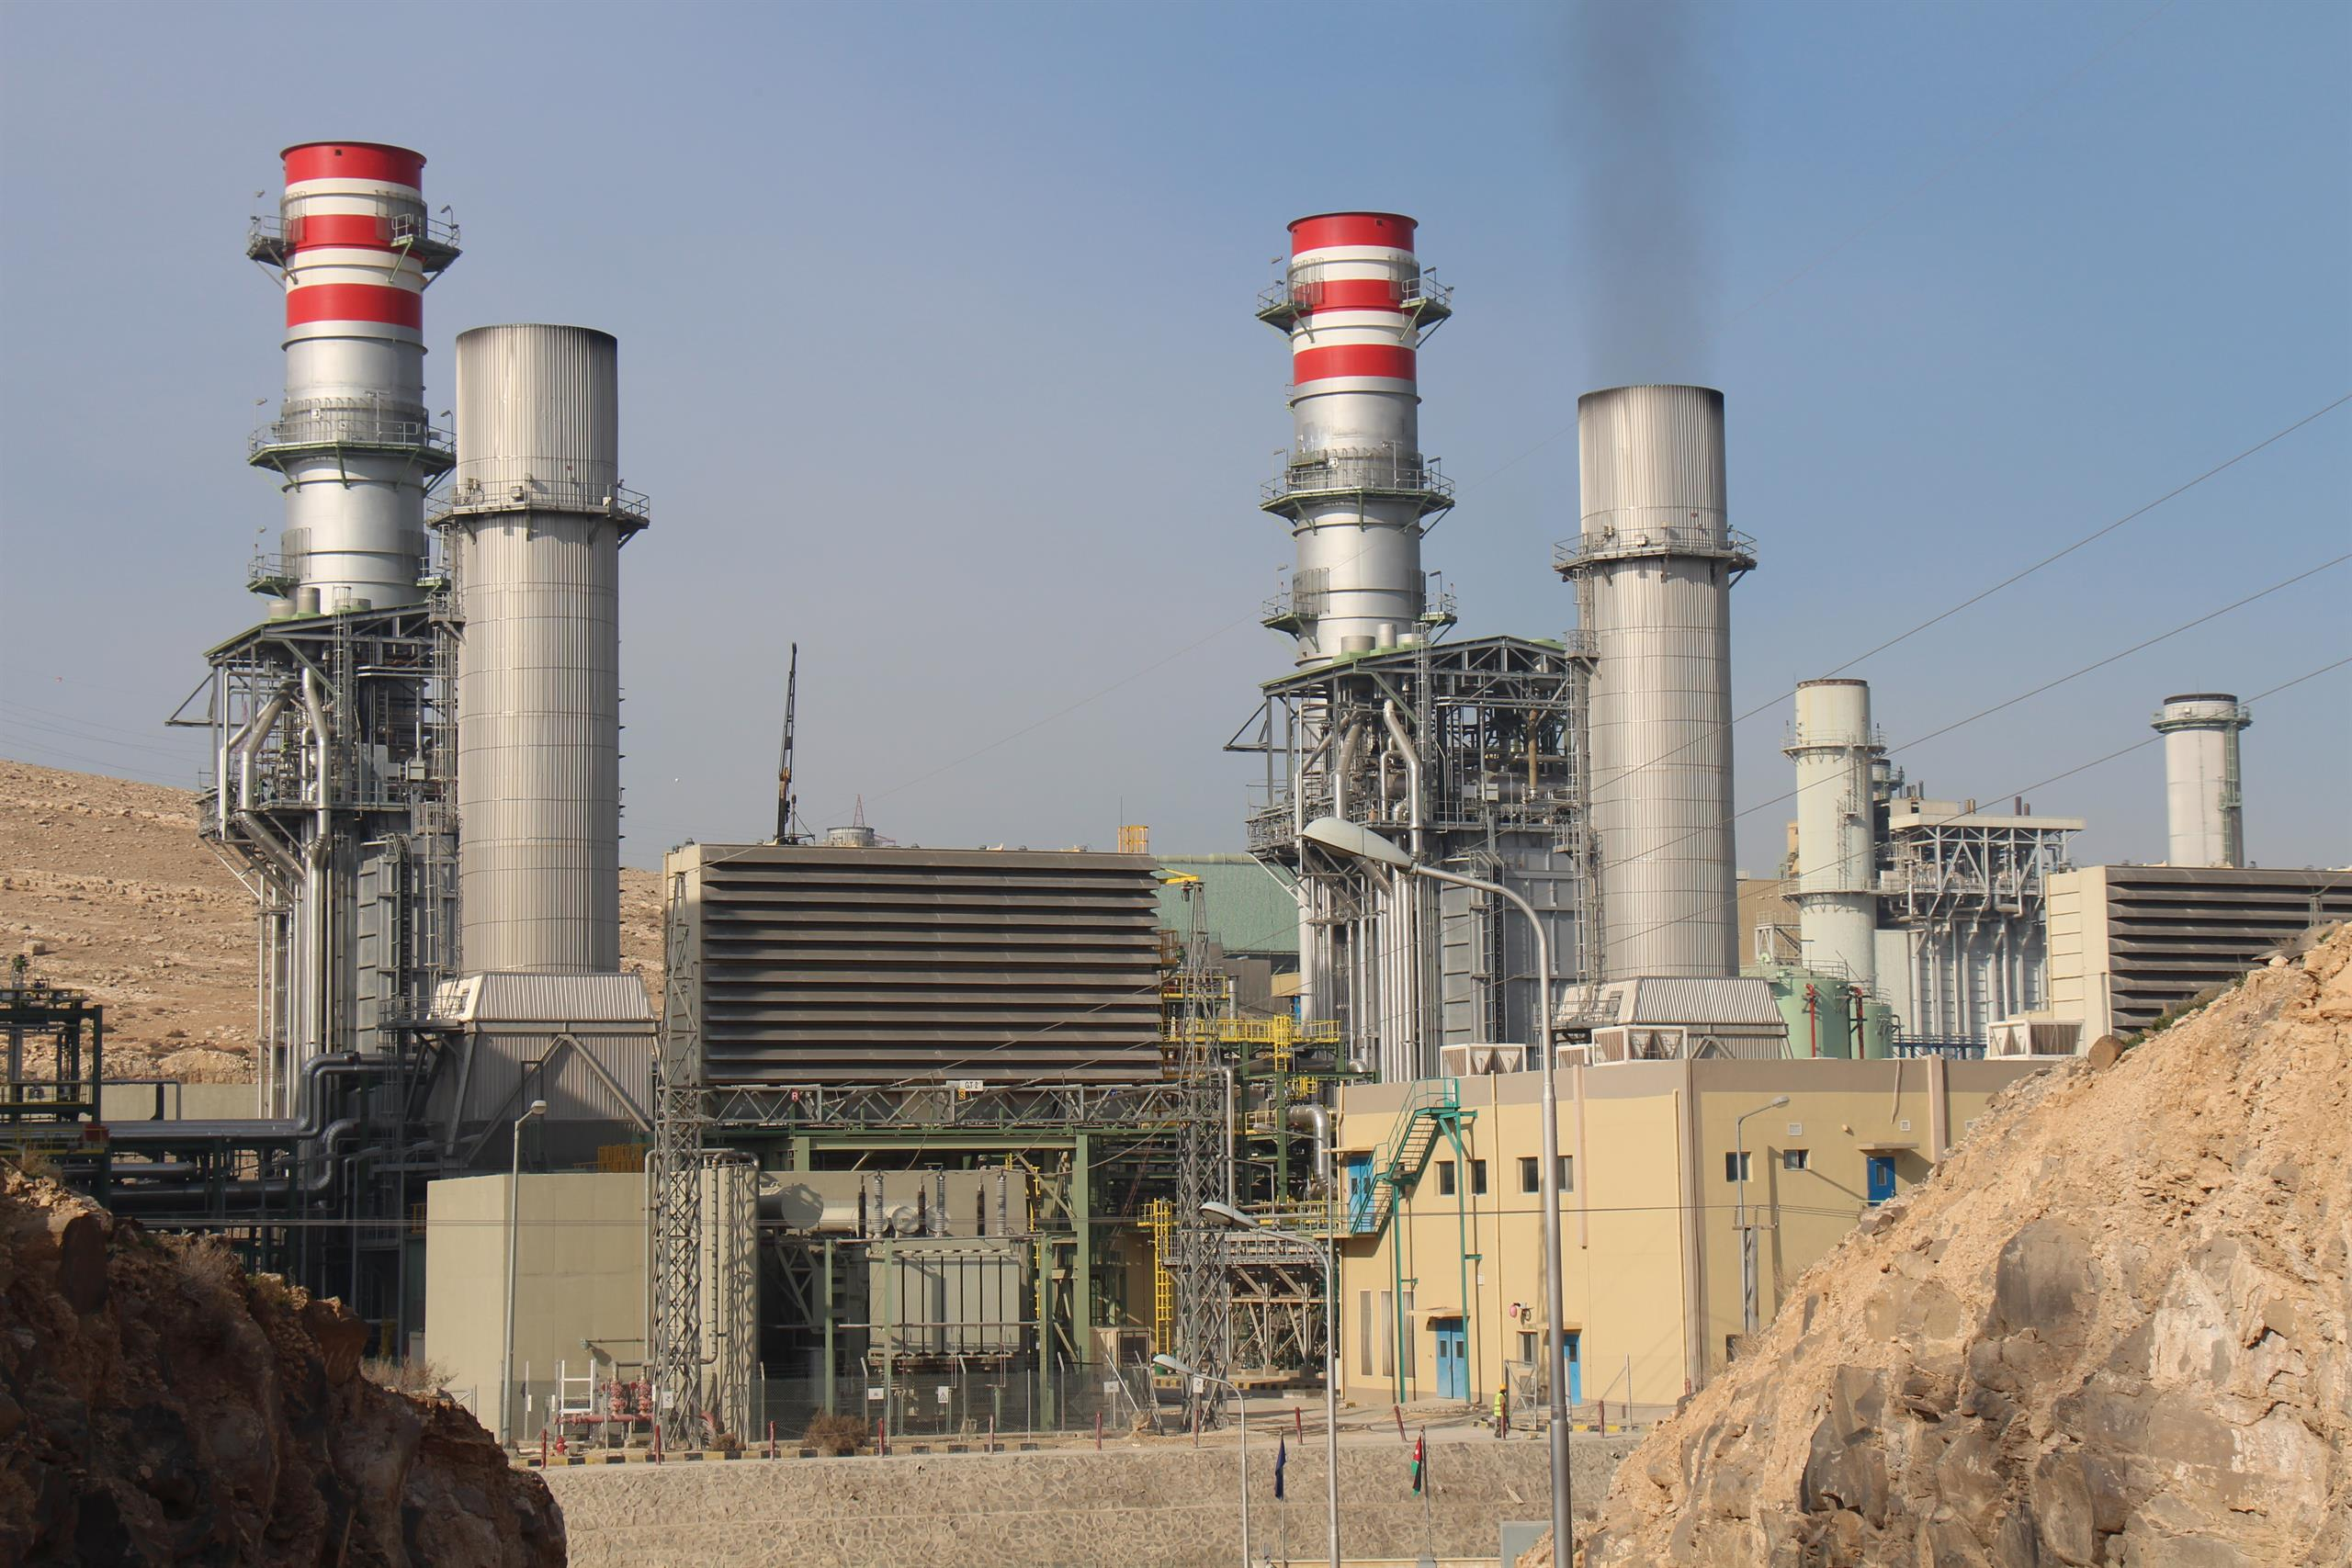 kepco unit breaks ground on key gas plant in u.s. - news, power - utilities  middle east  utilities middle east